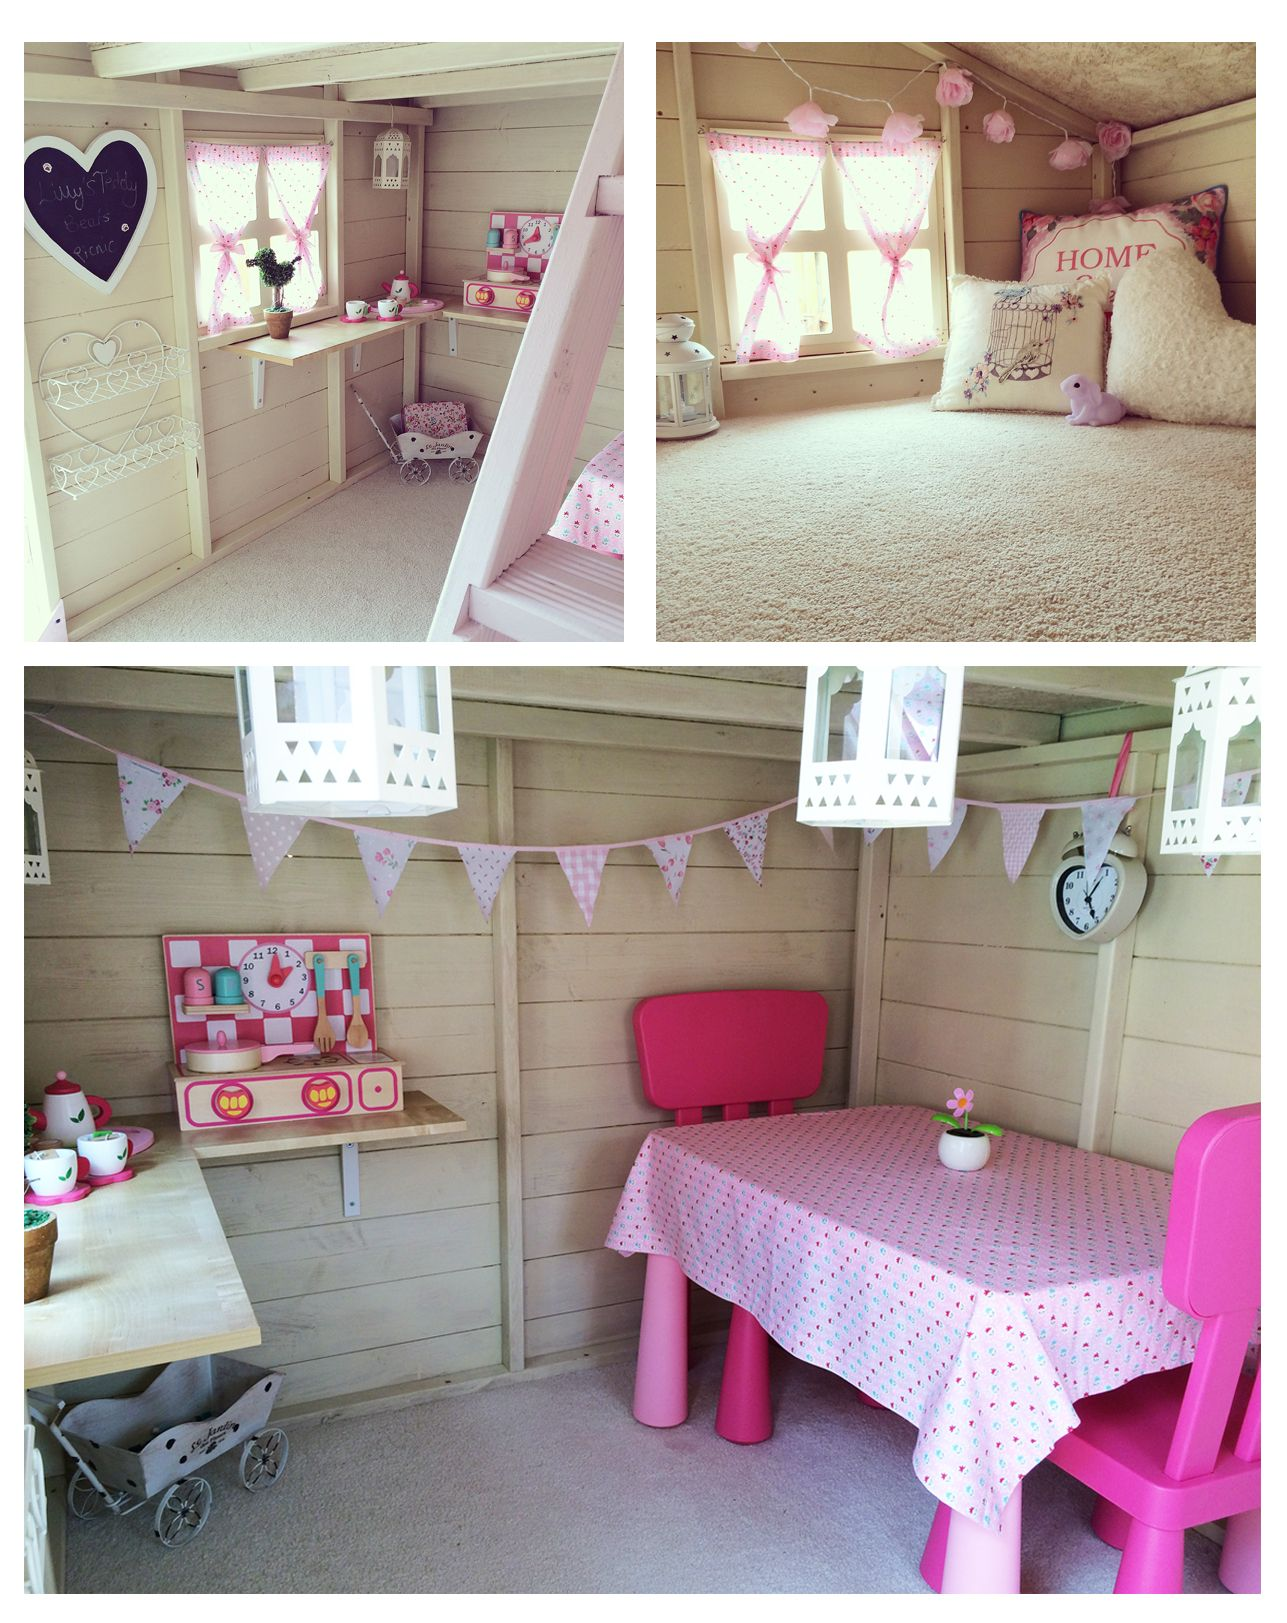 Playhouse interior decor ideas because you know our santa always customizing everything also awesome playhouses that your children will love rh pinterest